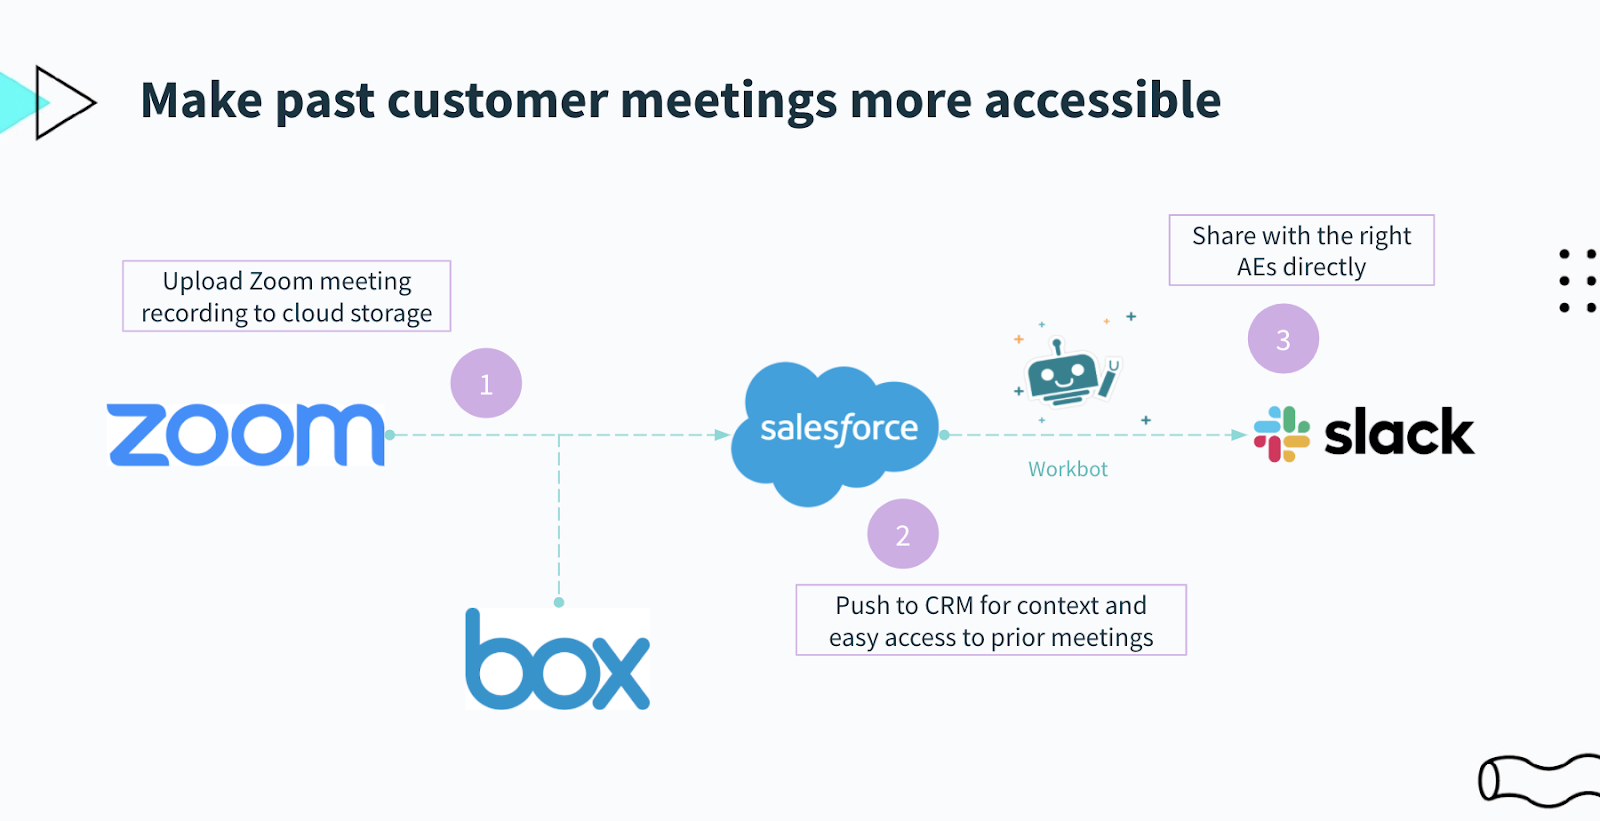 A flow chart that highlights each step of recording and distributing customer meetings.